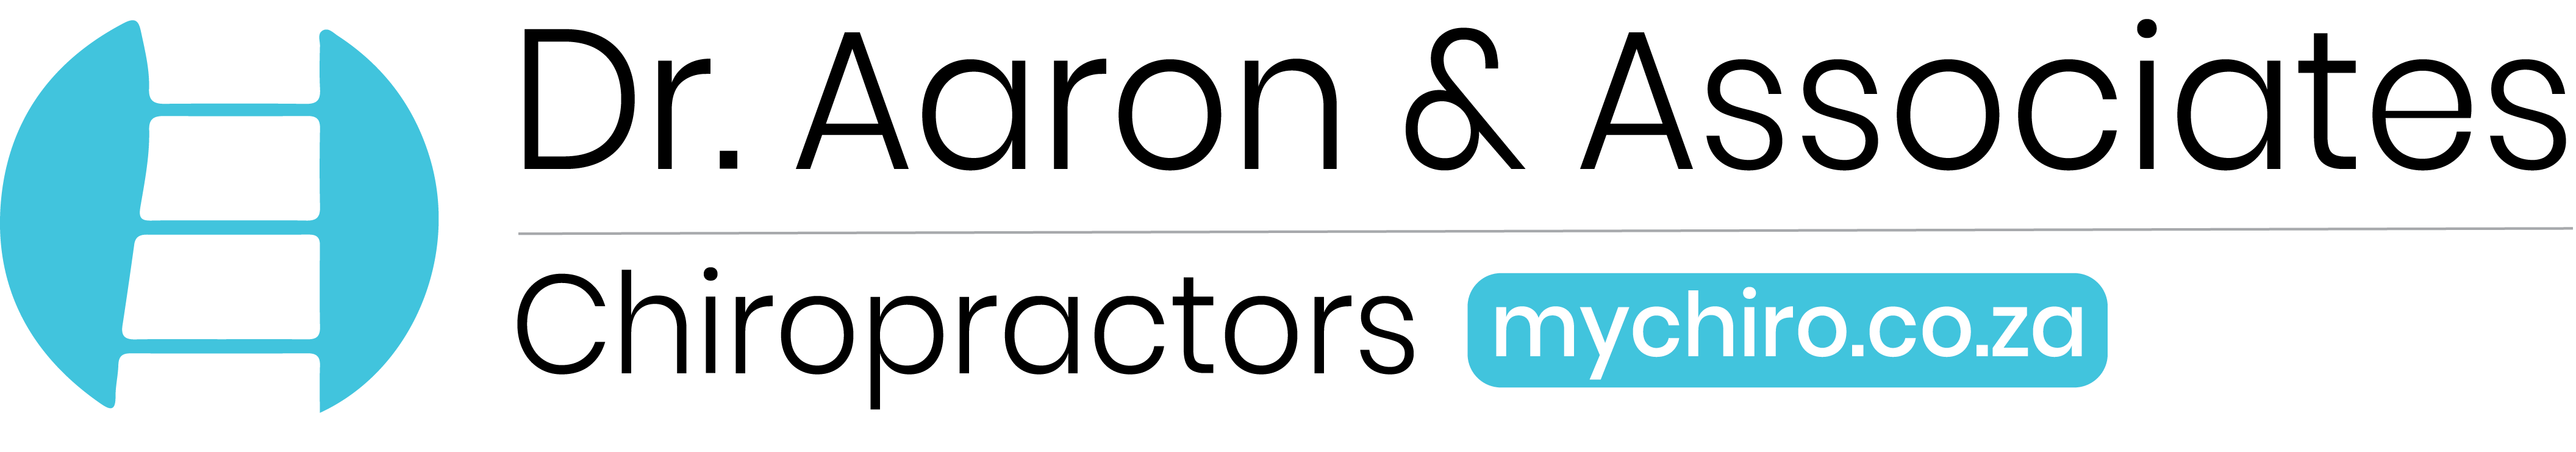 Dr. Aaron and Associates New descriptive and Informative Logo.